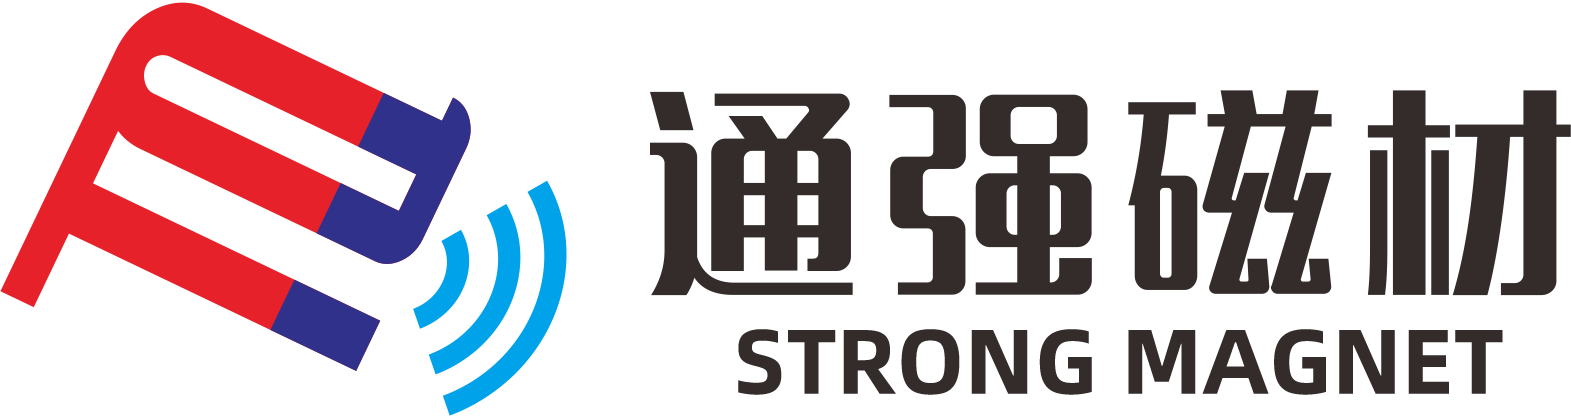 Ningbo strong magnetic material co.,ltd LOGO